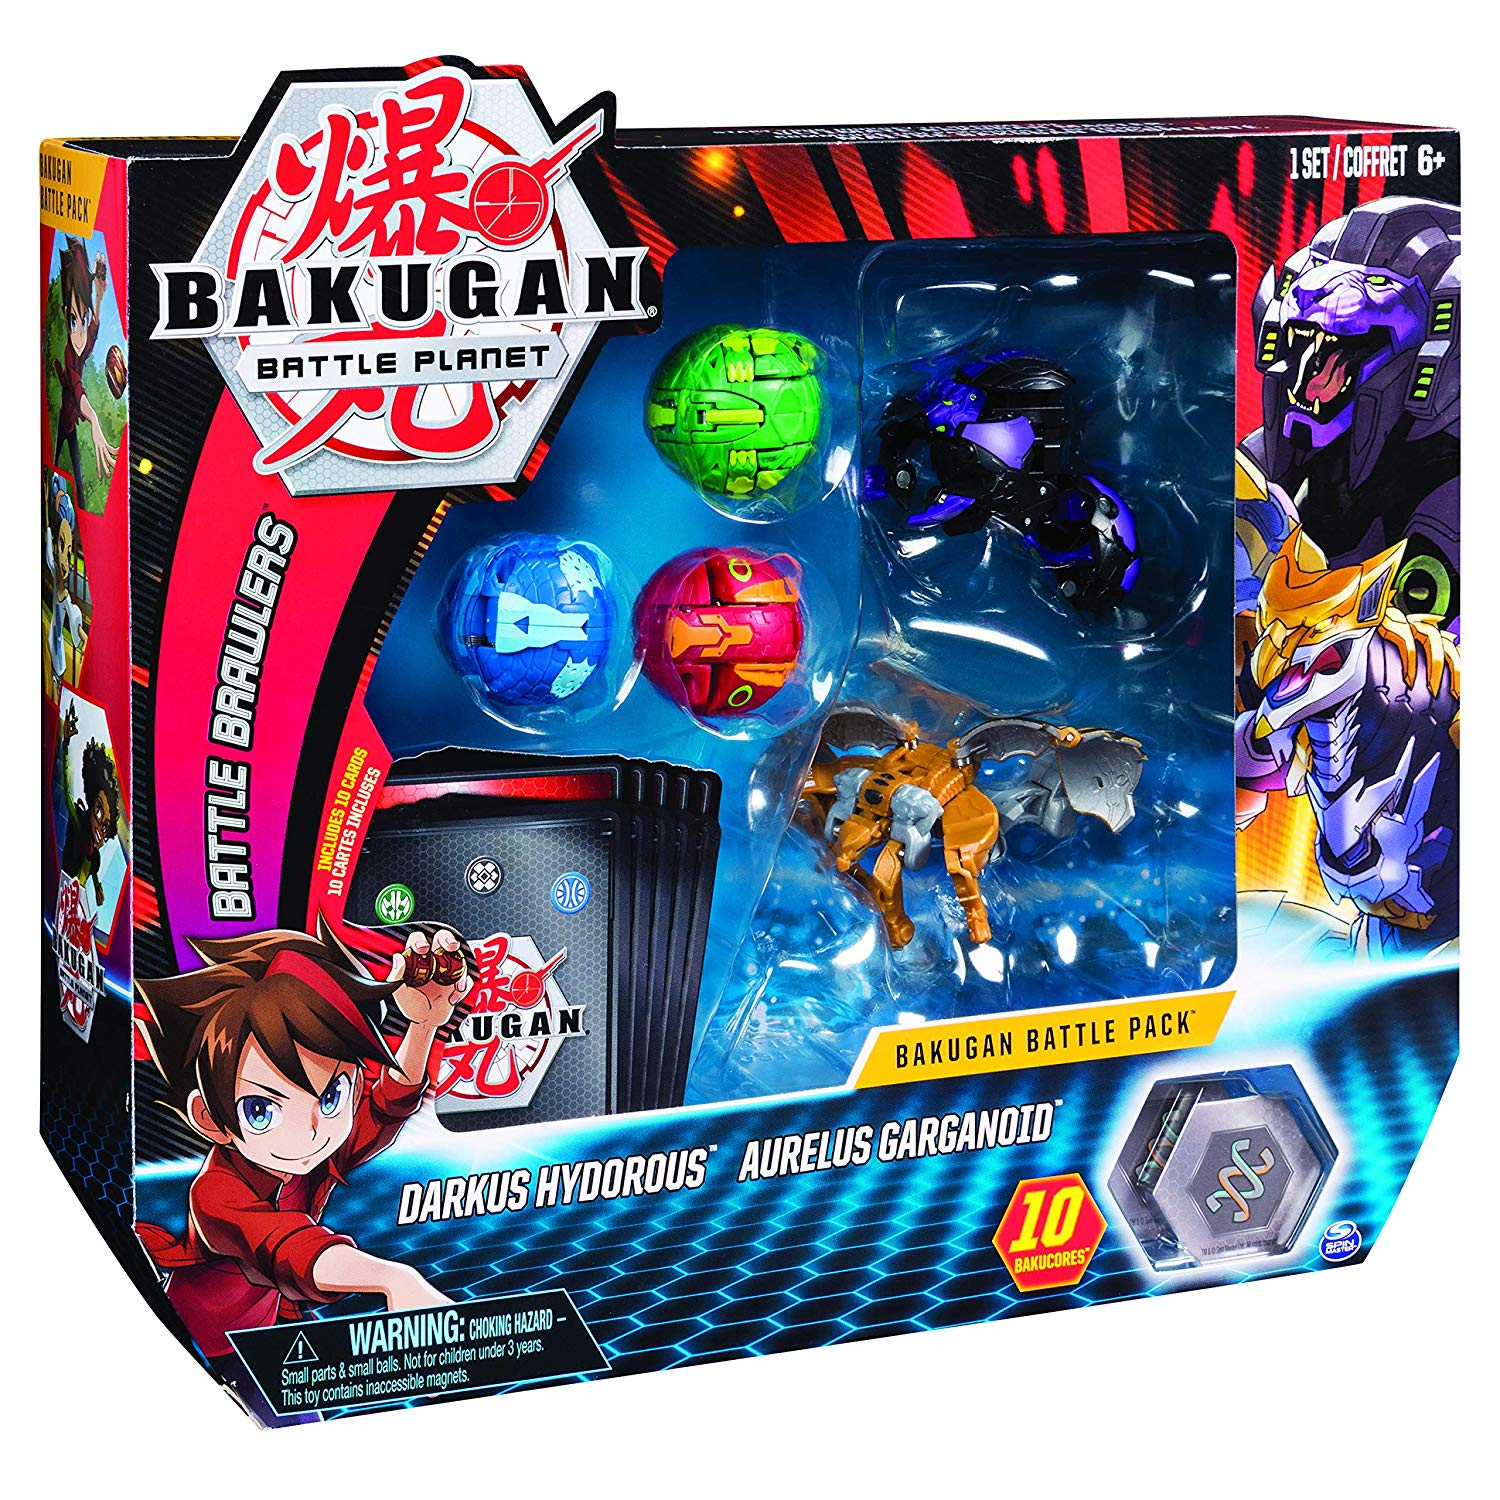 Bakugan Battle Pack Darkus Hydorous Aurelus Garganoid